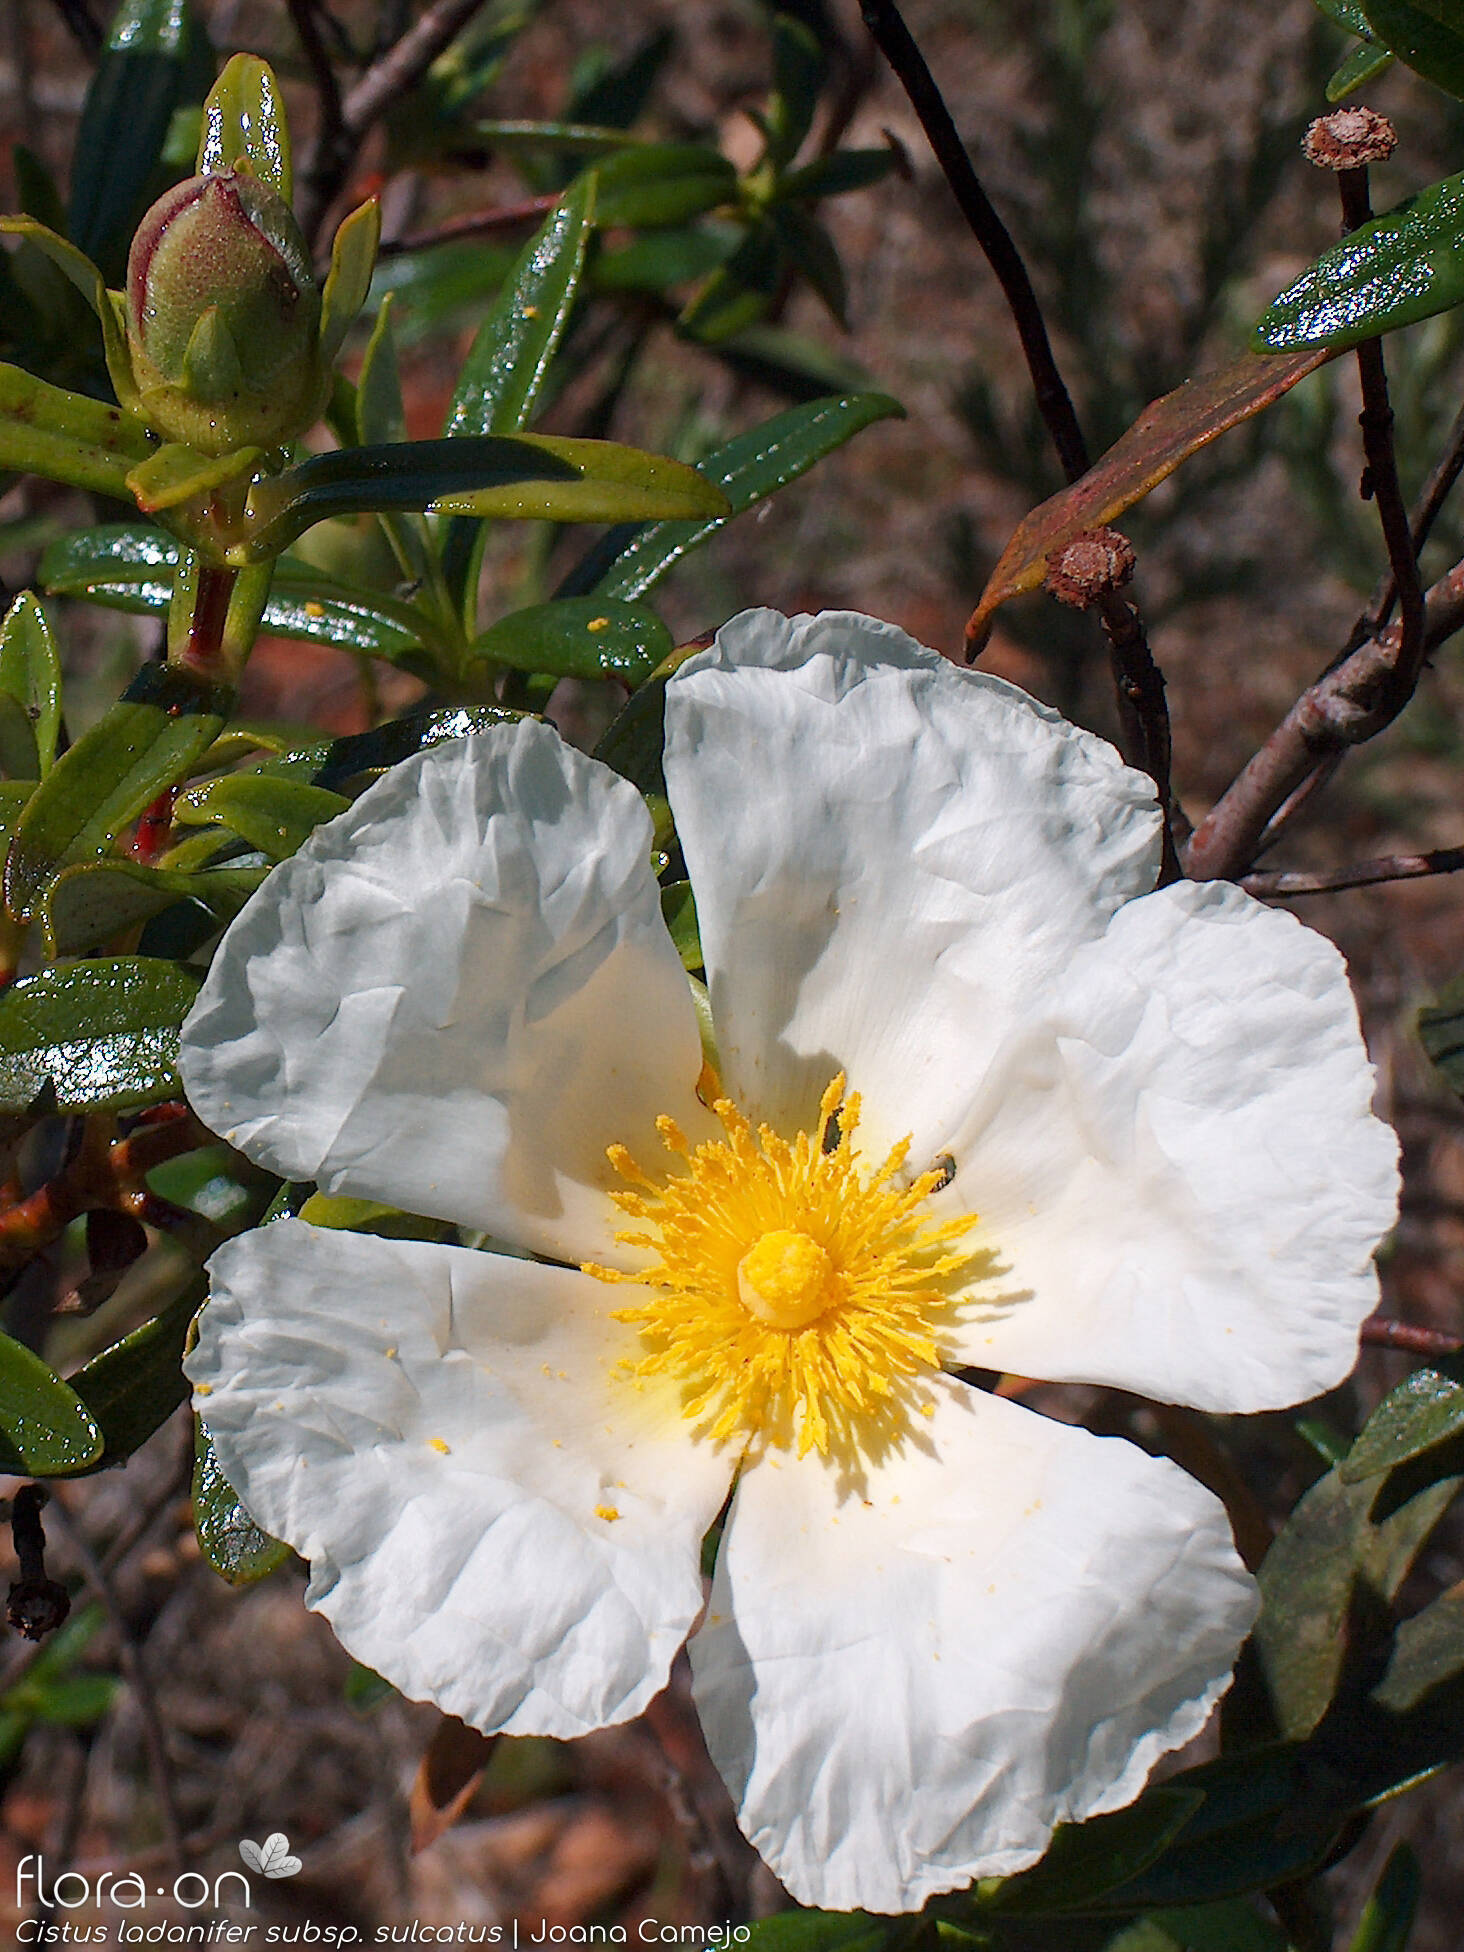 Cistus ladanifer sulcatus - Flor (close-up) | Joana Camejo; CC BY-NC 4.0